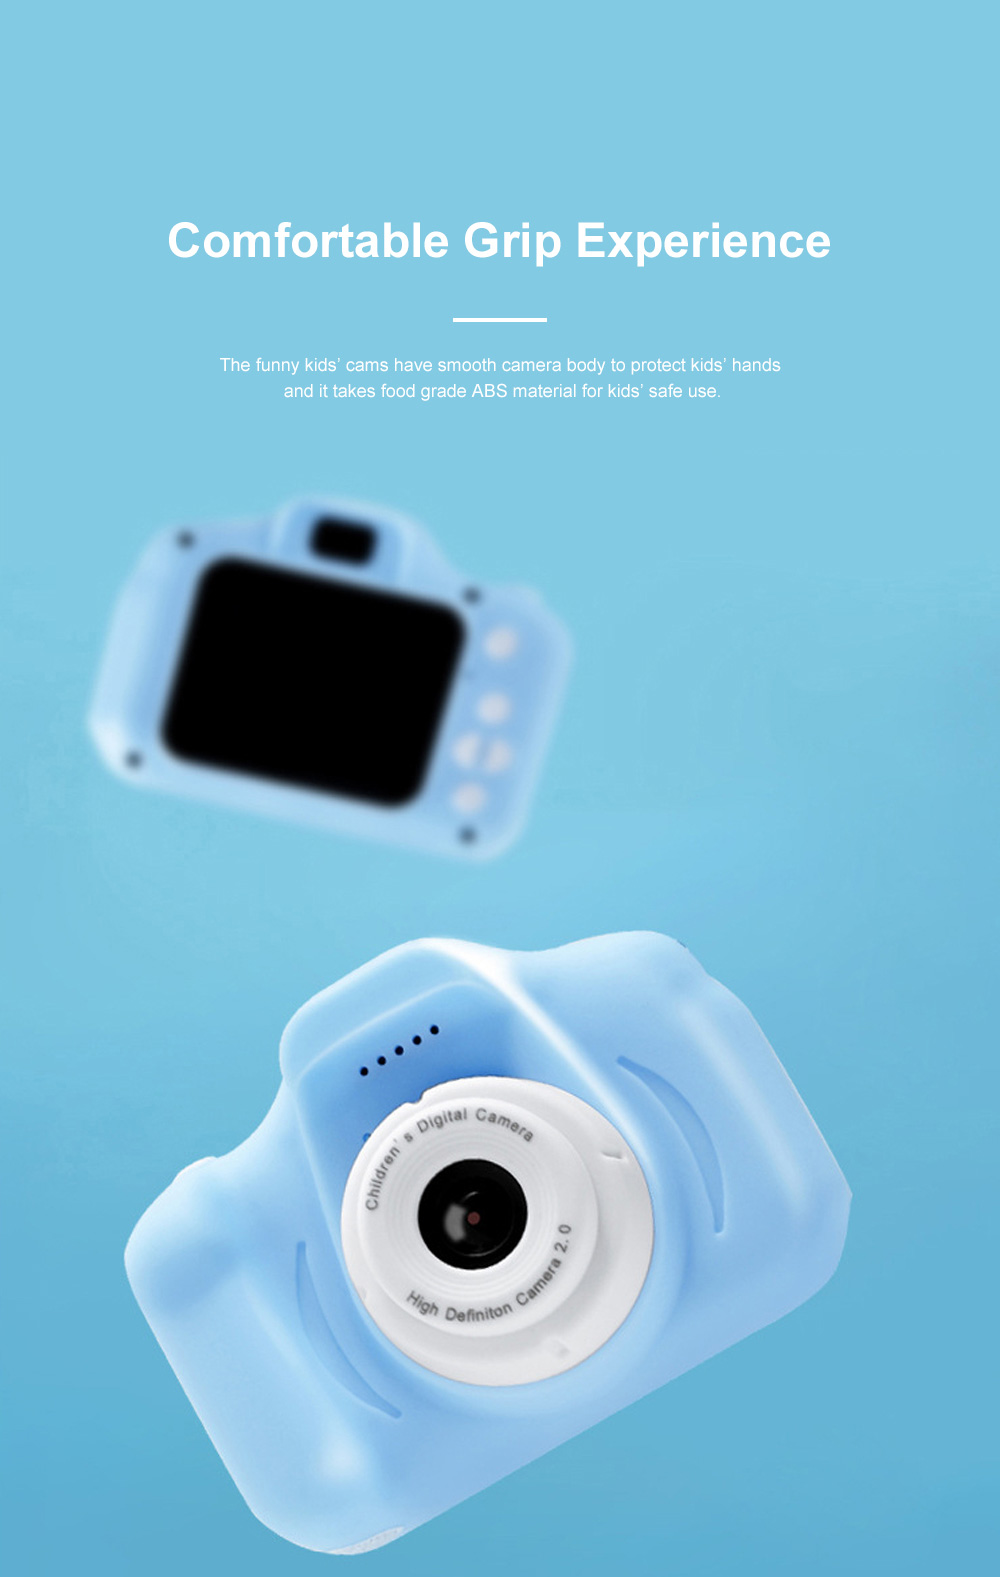 Mini Digital Camera for Children's Gift Environment-friendly ABS Funny Kids' Cams Durable Outdoor Video Camera Portable Cartoon Camera 4